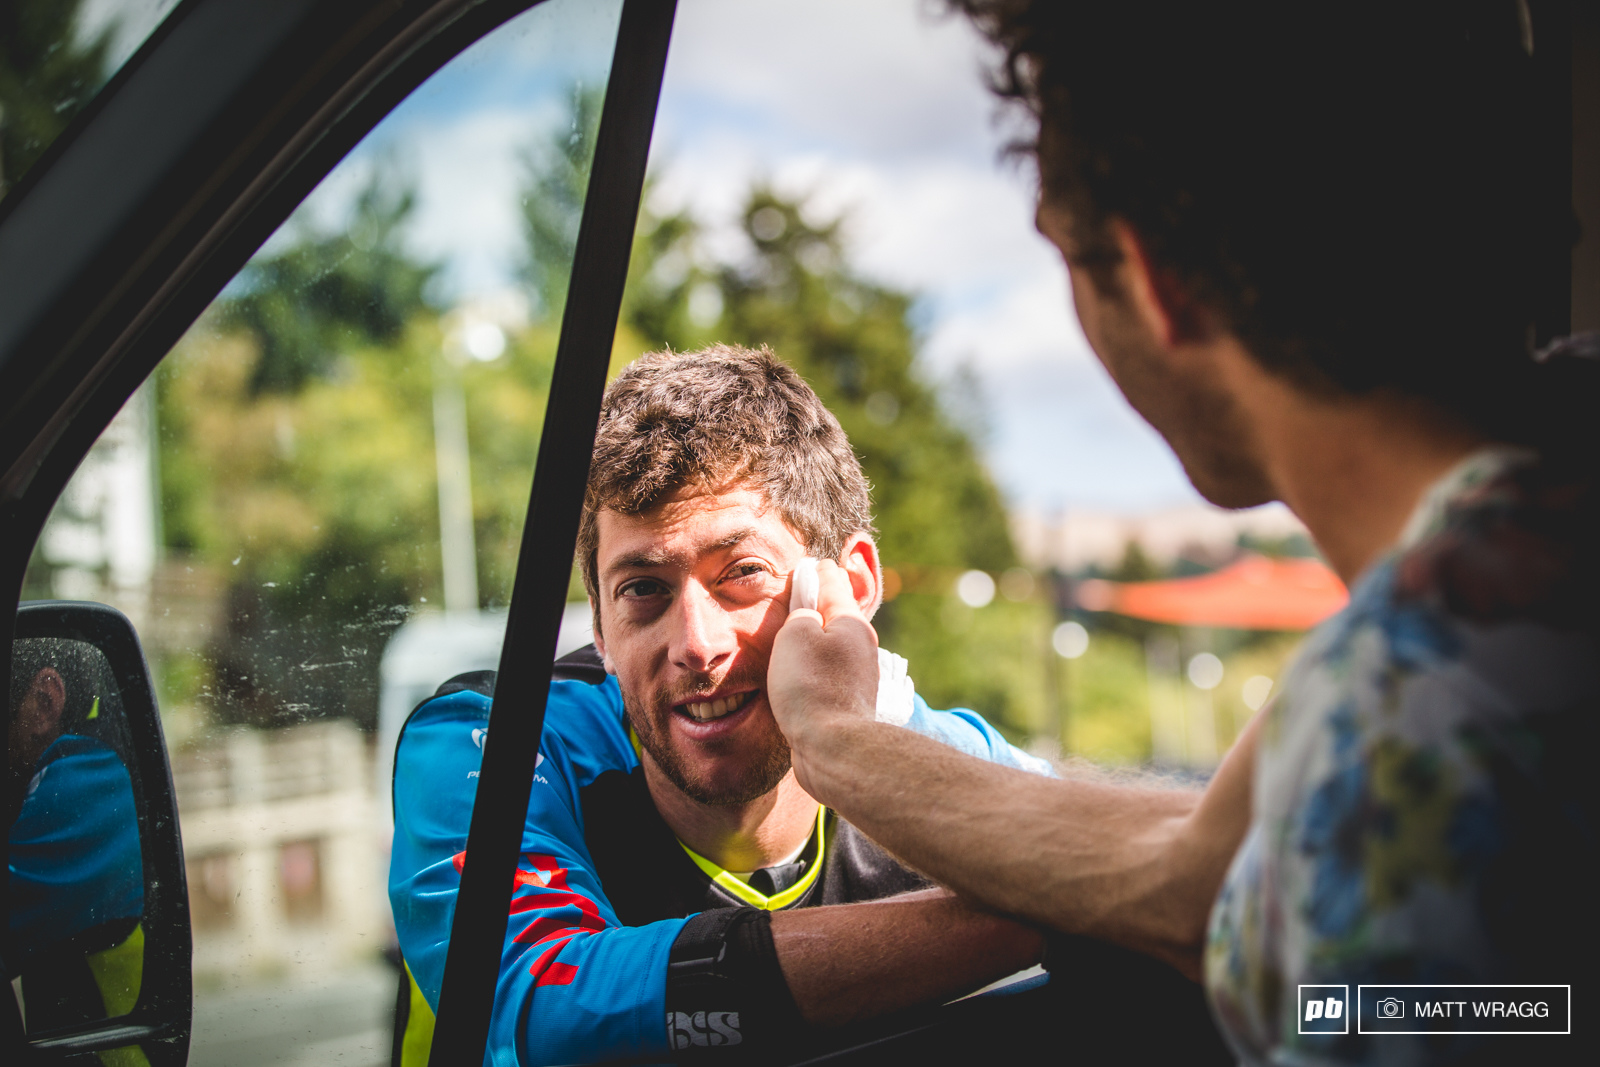 The winners get all thw attention. Thomas Lapeyrie offers Francois Bailly-Maitre some TLC before the podium.